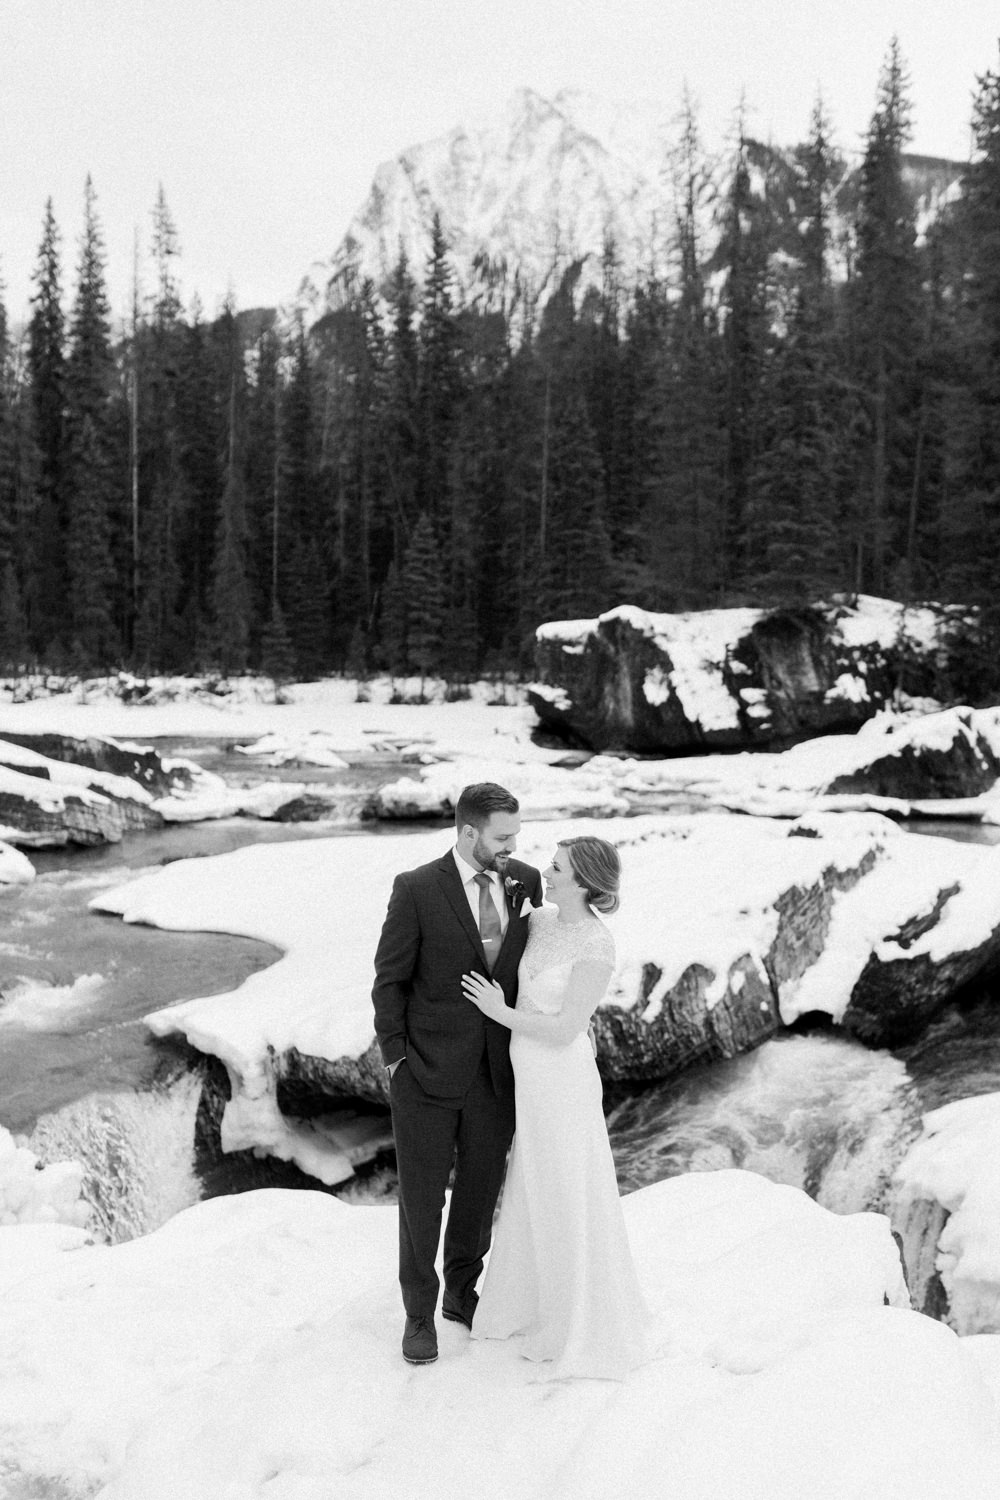 Matt-and-Jennas-Emerald-Lake-winter-wedding-20.jpg